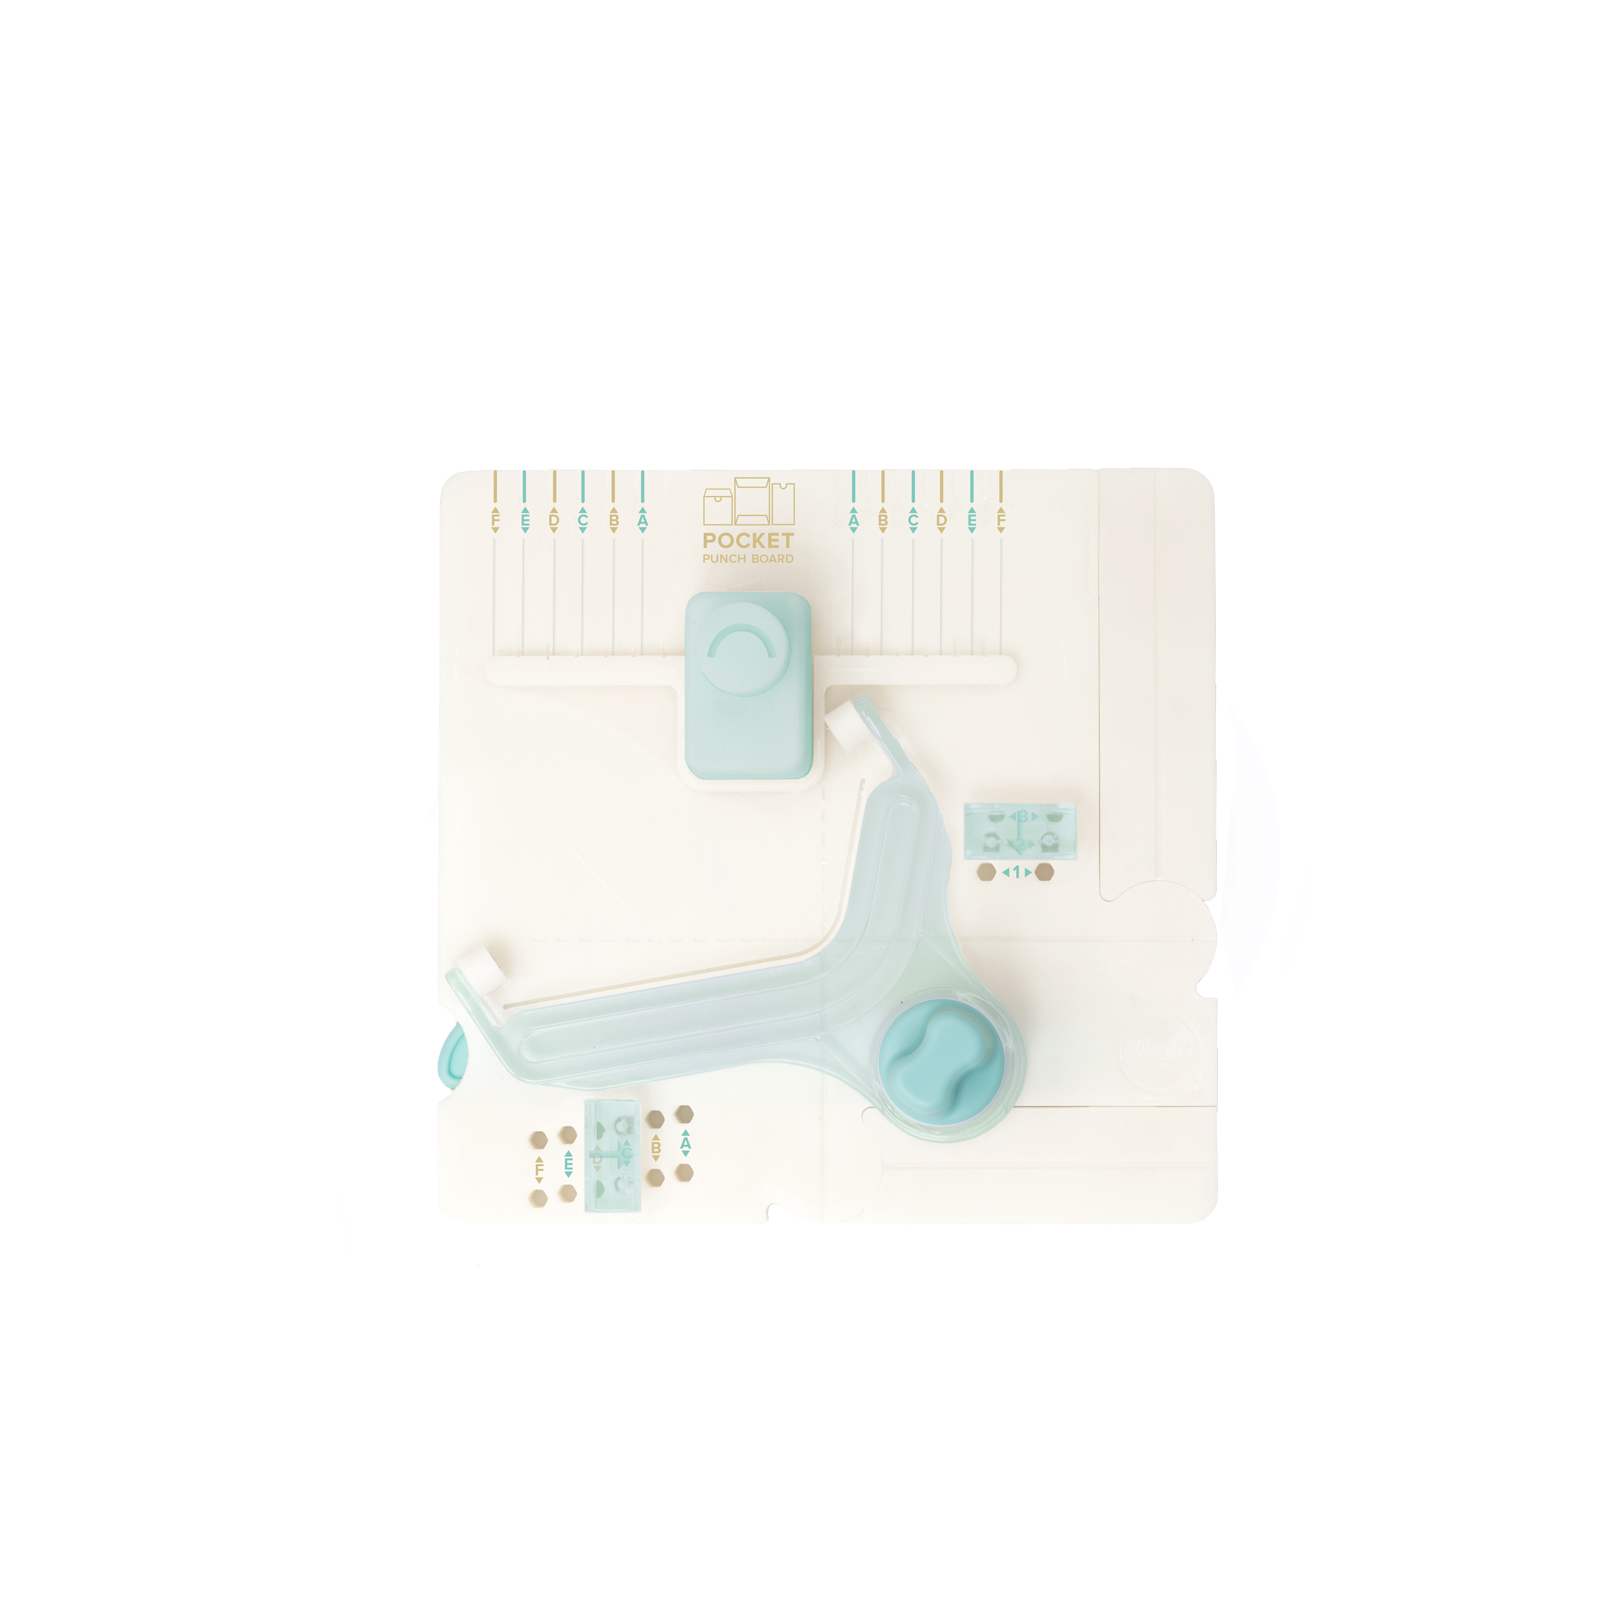 Pocket Punch Board by We R Memory Keepers